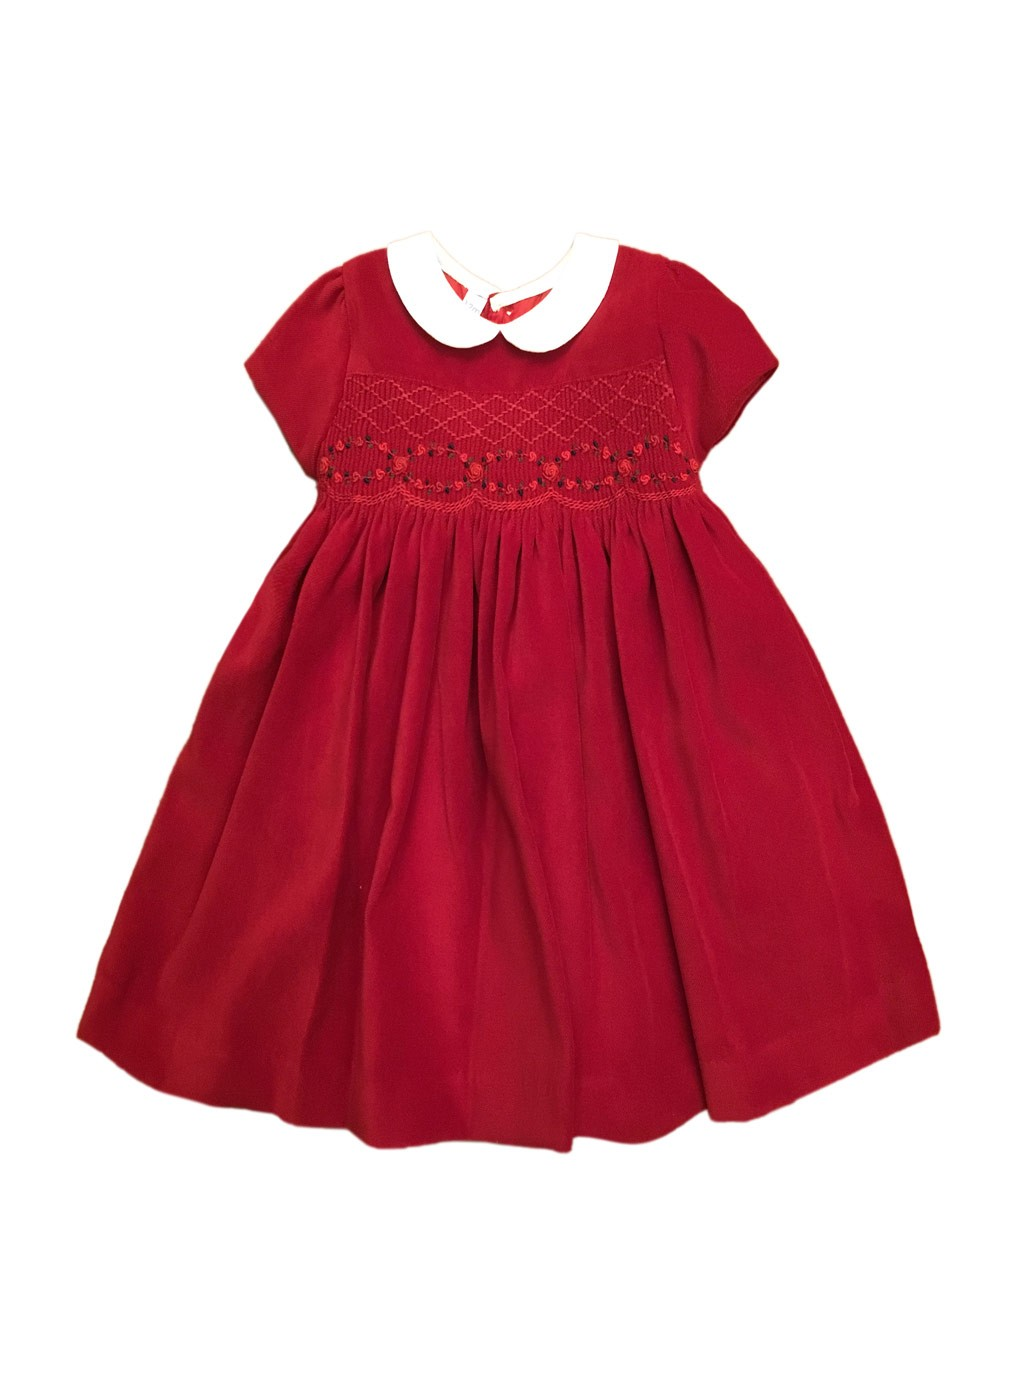 A Girls Dress With Smocked For The Christmas Holidays